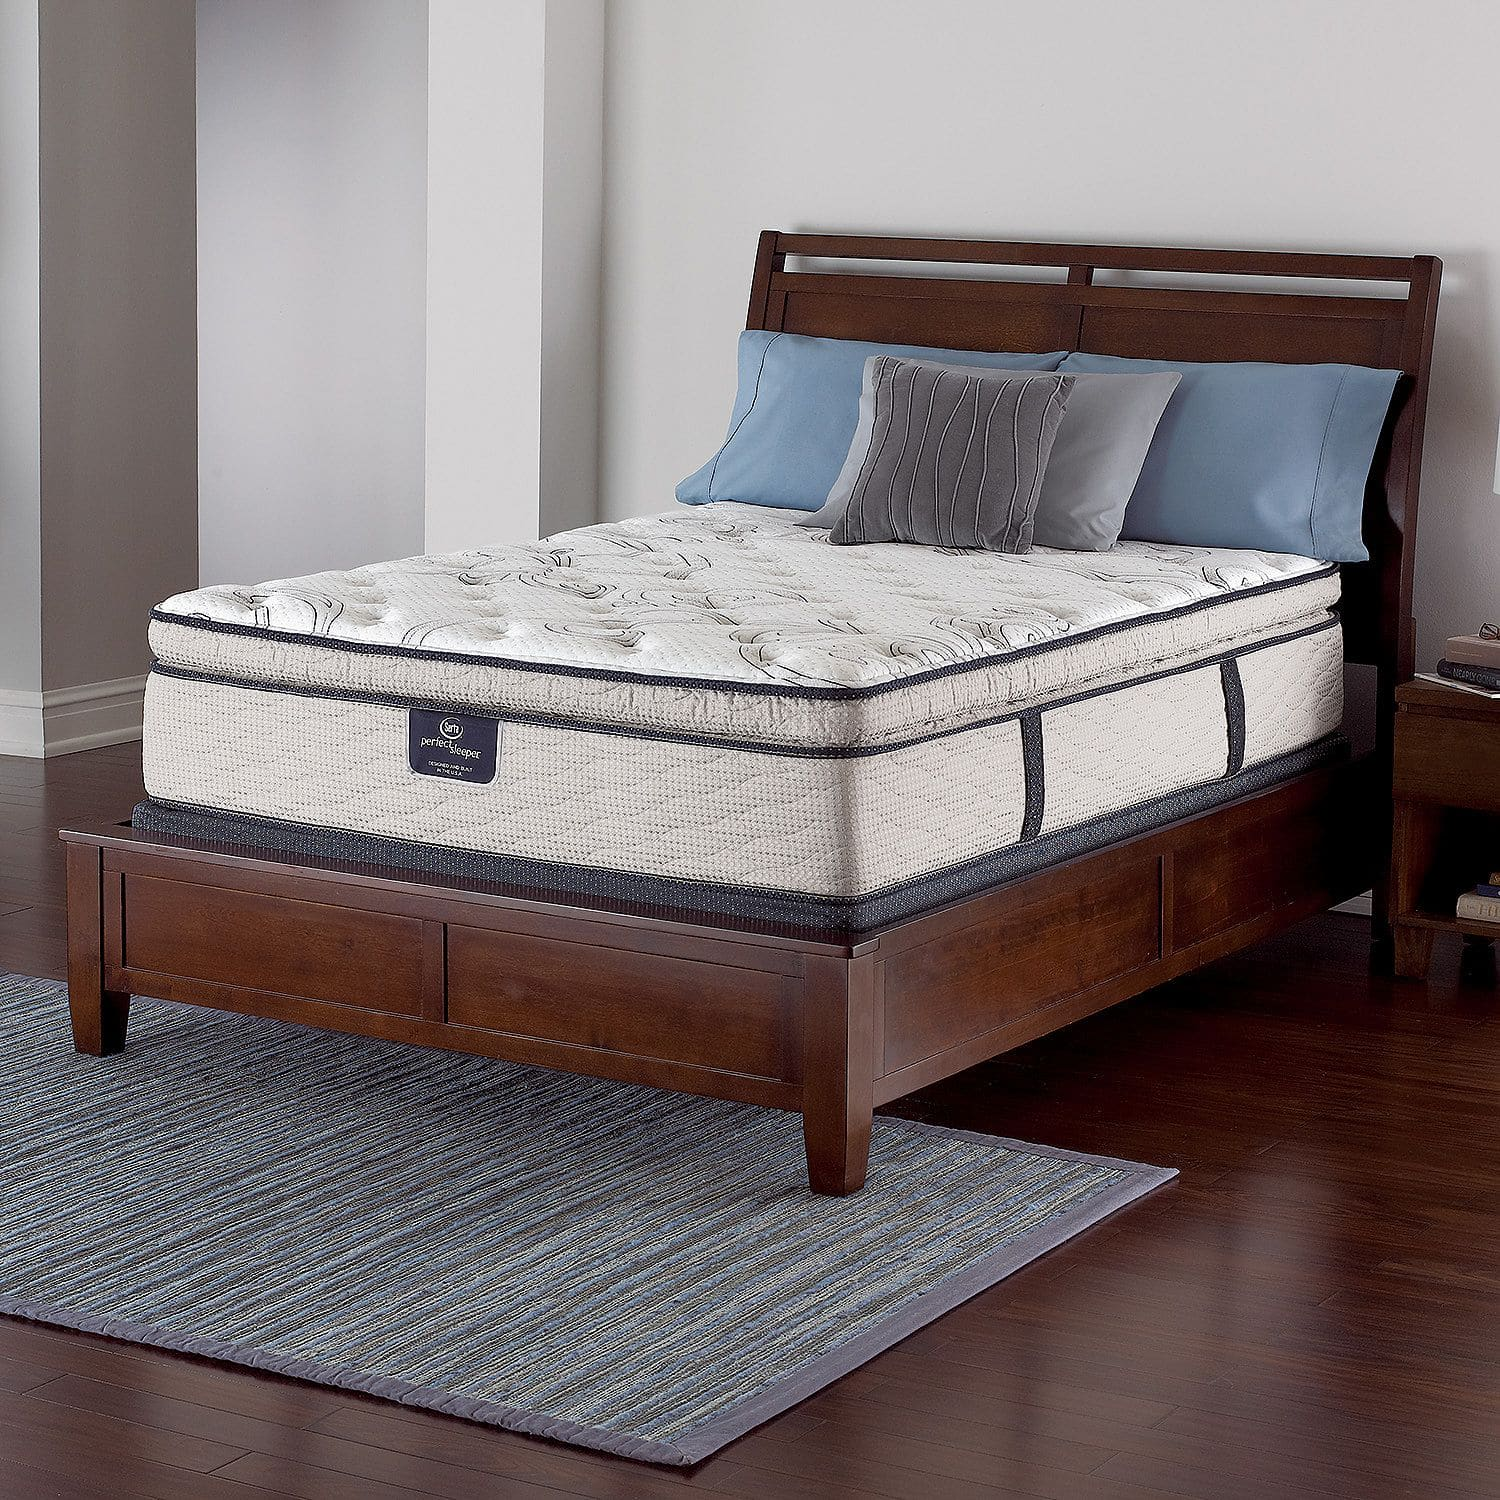 pillow products box icomfort super king serta collections and the mattress set spring top advisor hybrid furniture space